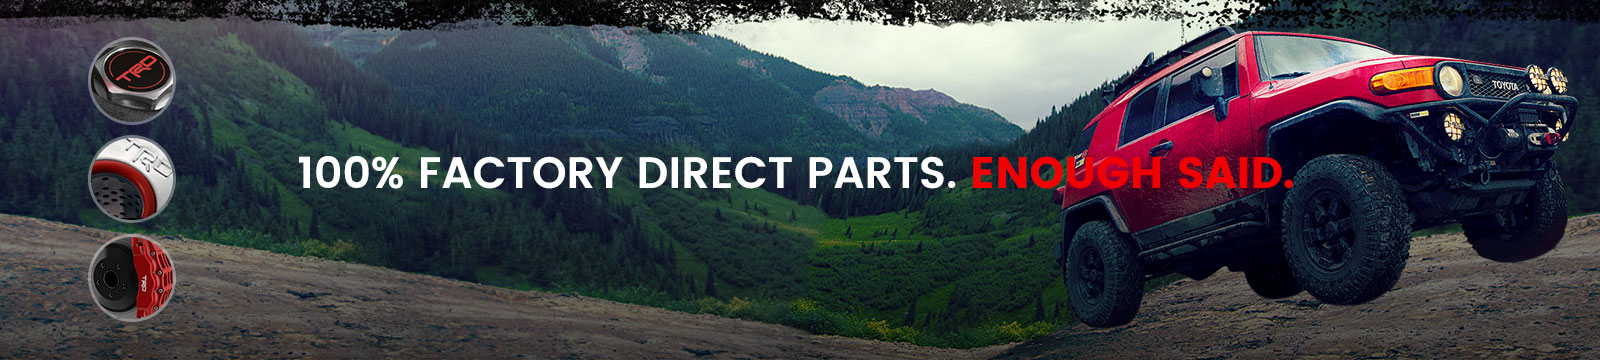 Toyota OEM Direct Parts Banner 1